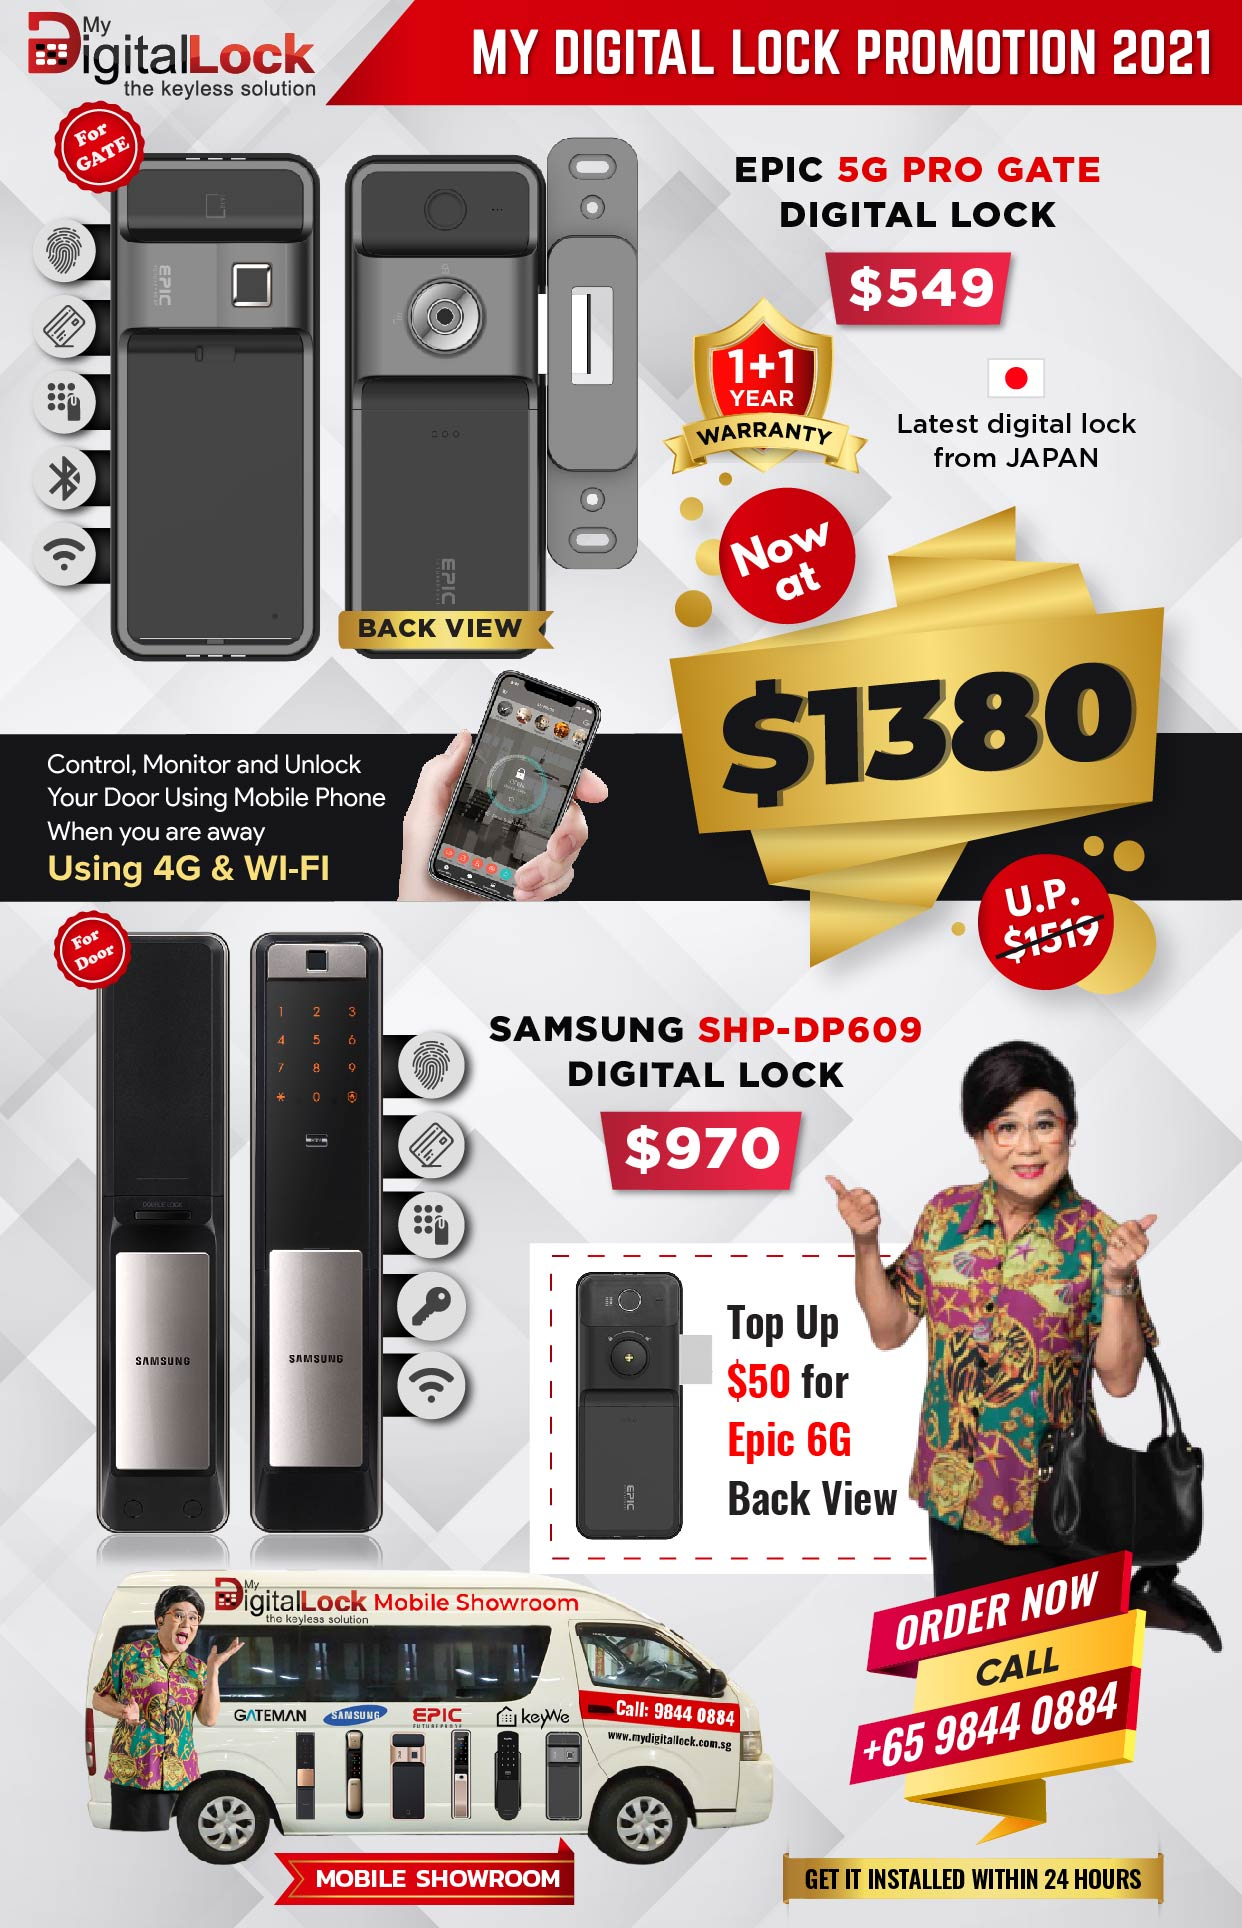 Epic 5g Pro gate Digitallock promotion 2021